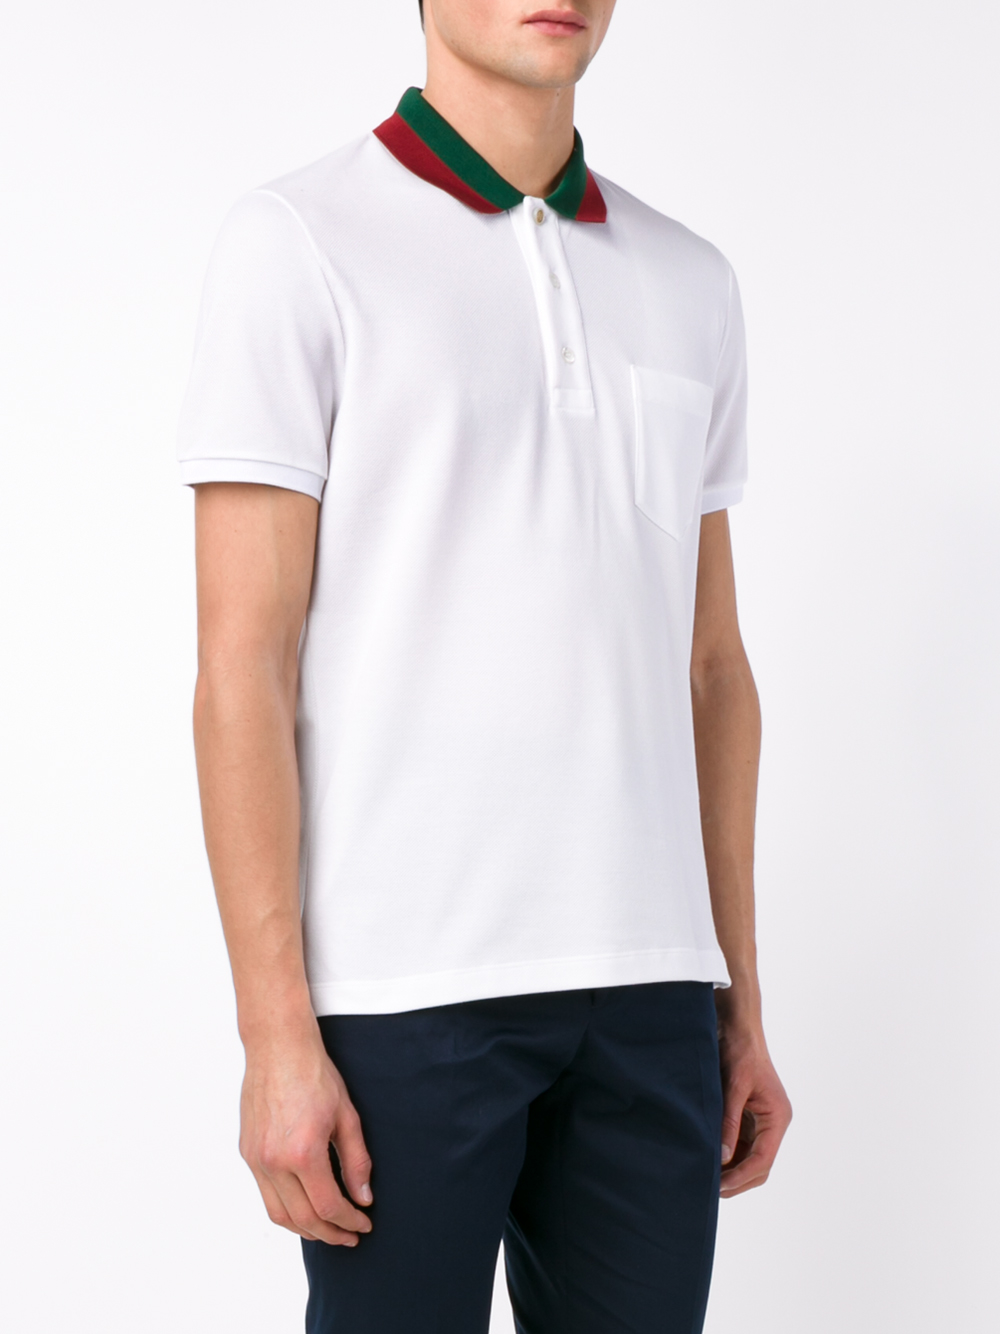 49b6f84cd38 Lyst - Gucci Striped Collar Polo T-shirt in White for Men